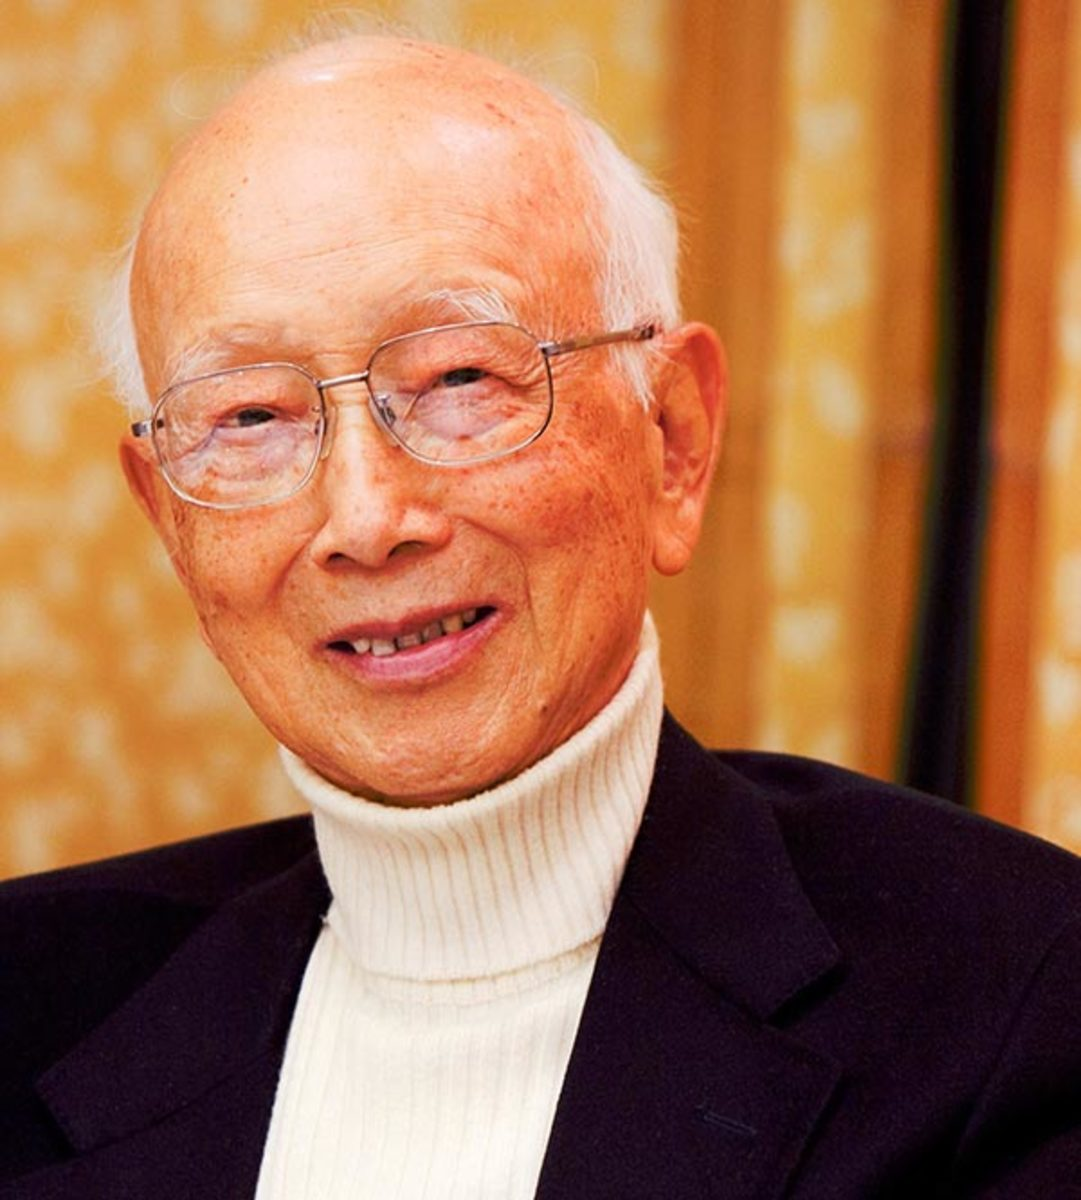 The late Raymond Chow who produced many Hong Kong films including 'Fist Of Fury' which helped establish Lee as a global icon.